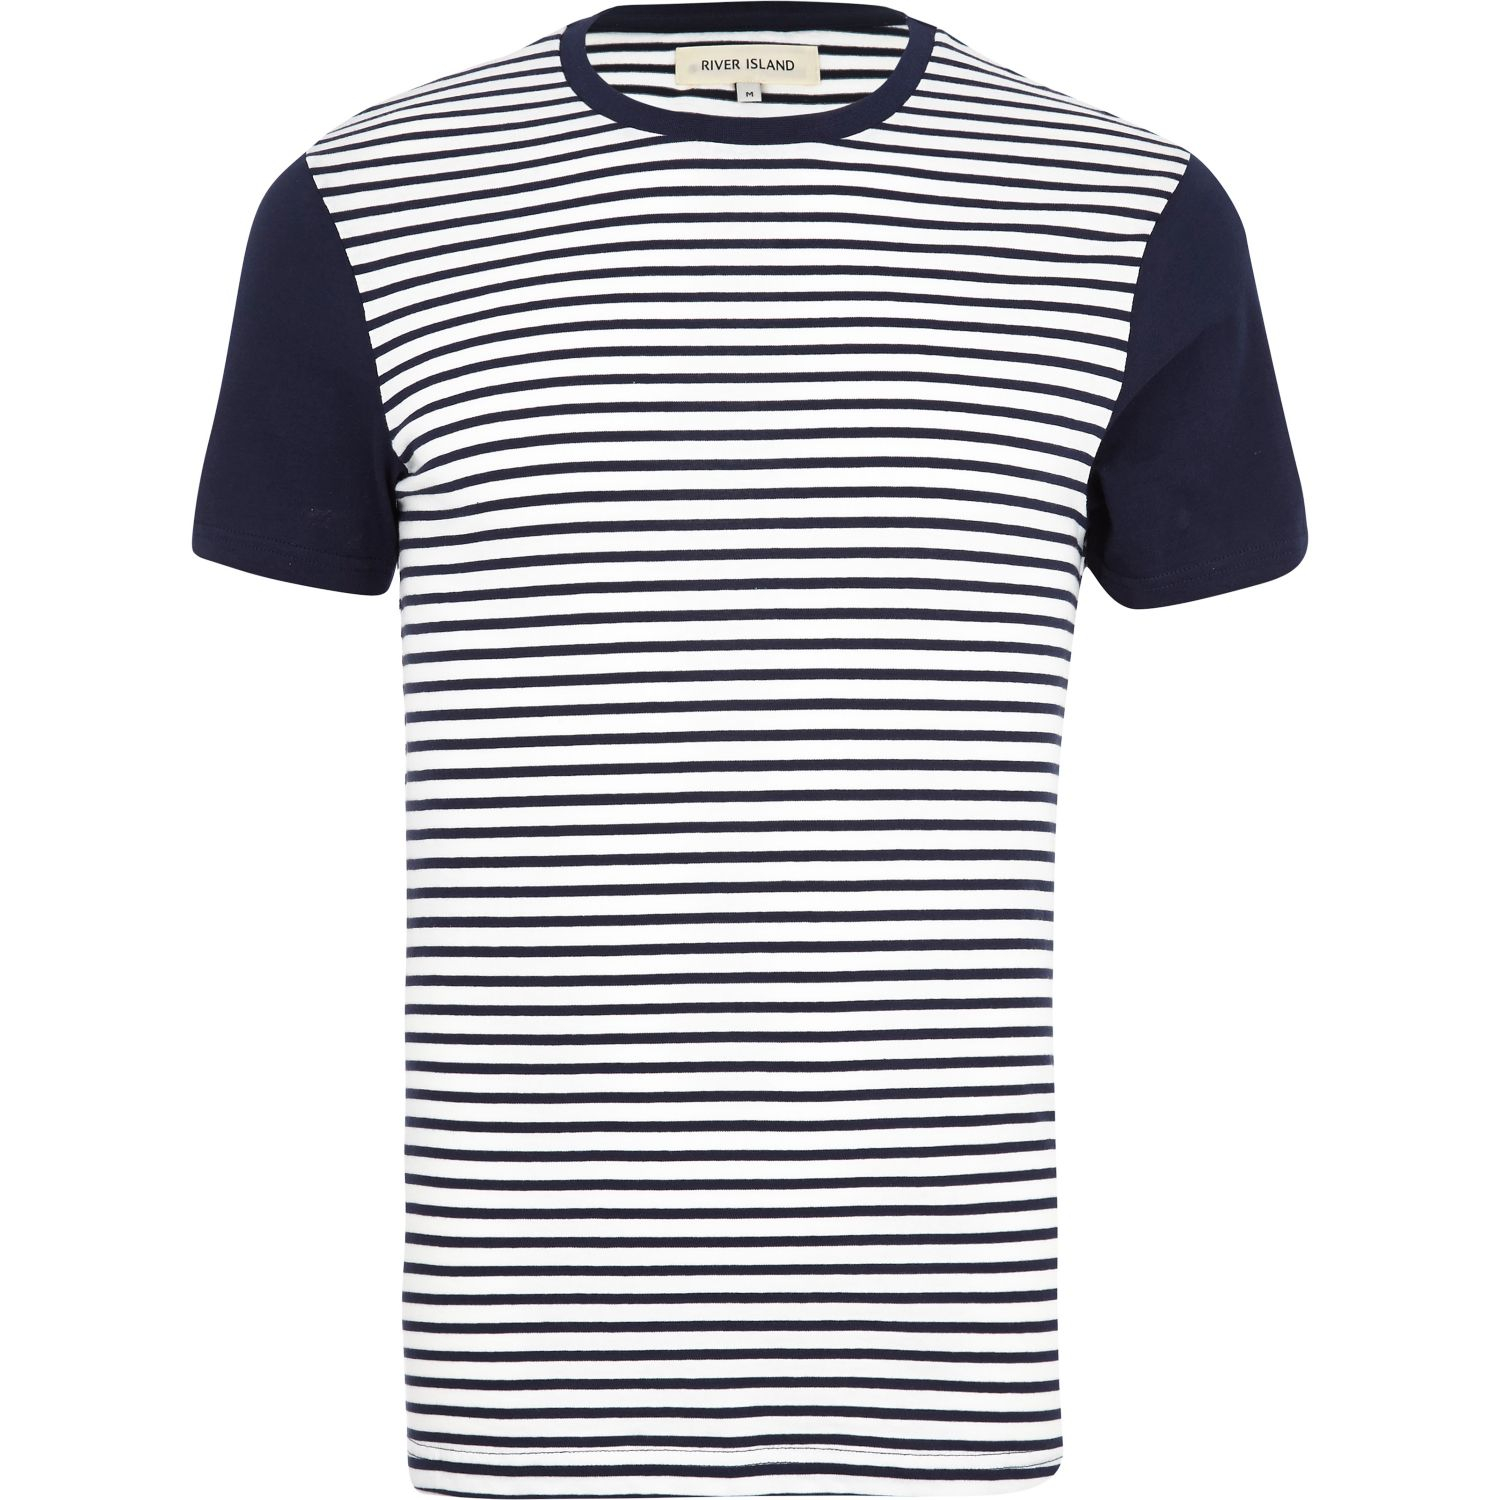 Lyst river island navy color block stripe tshirt in blue for Navy blue color shirt